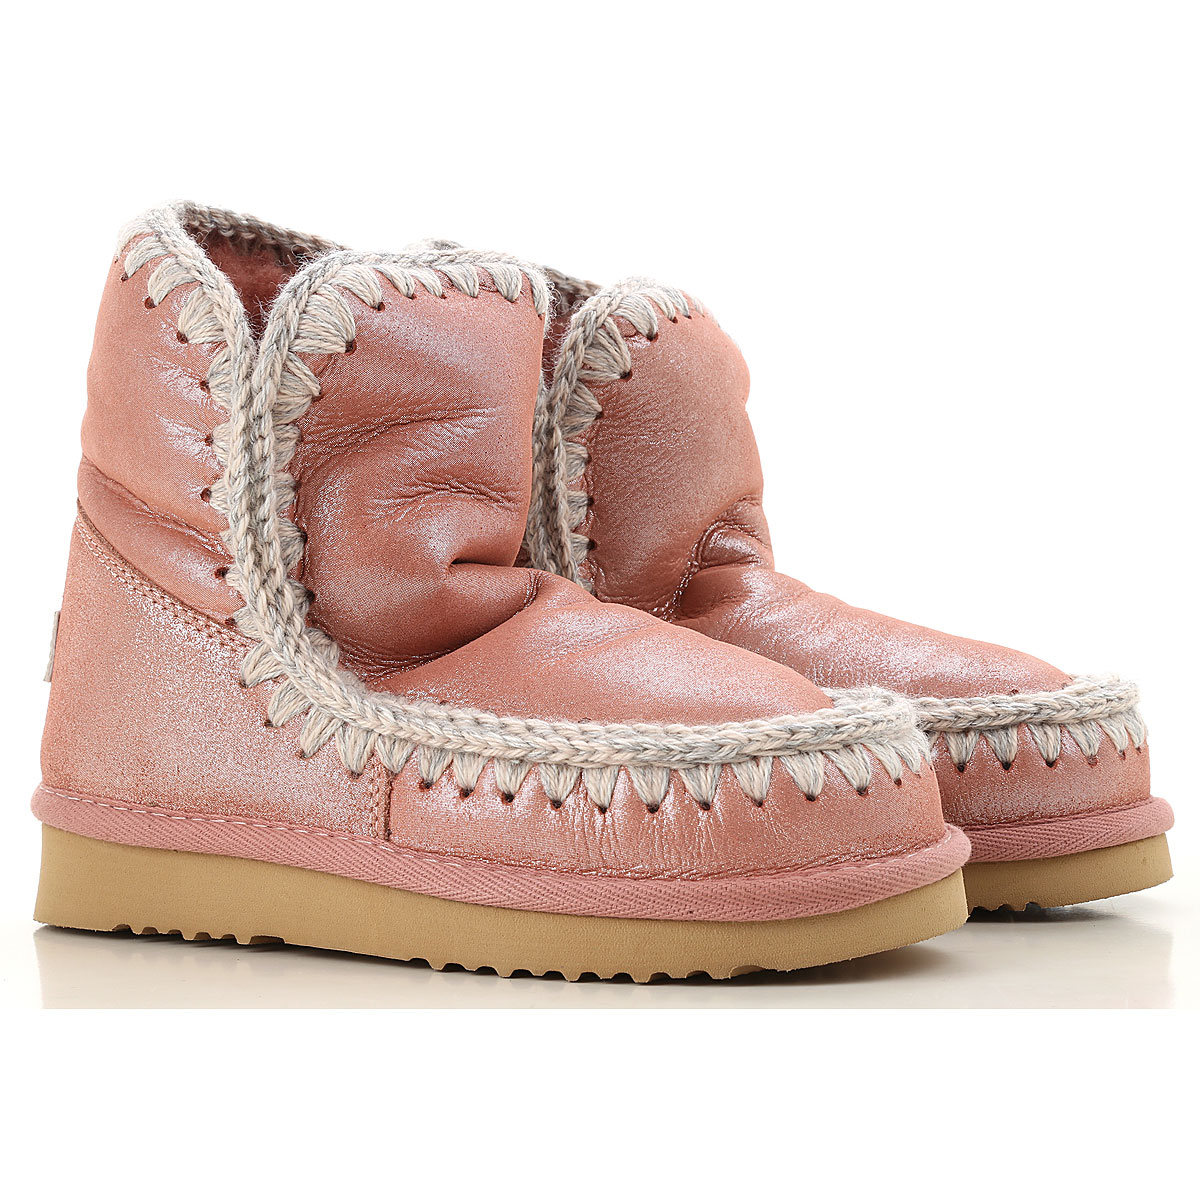 Mou Boots for Women, Booties On Sale, Pink, Leather, 2019, EUR 39 - UK 6 - USA 8.5 EUR 40 - UK 7 - USA 9.5